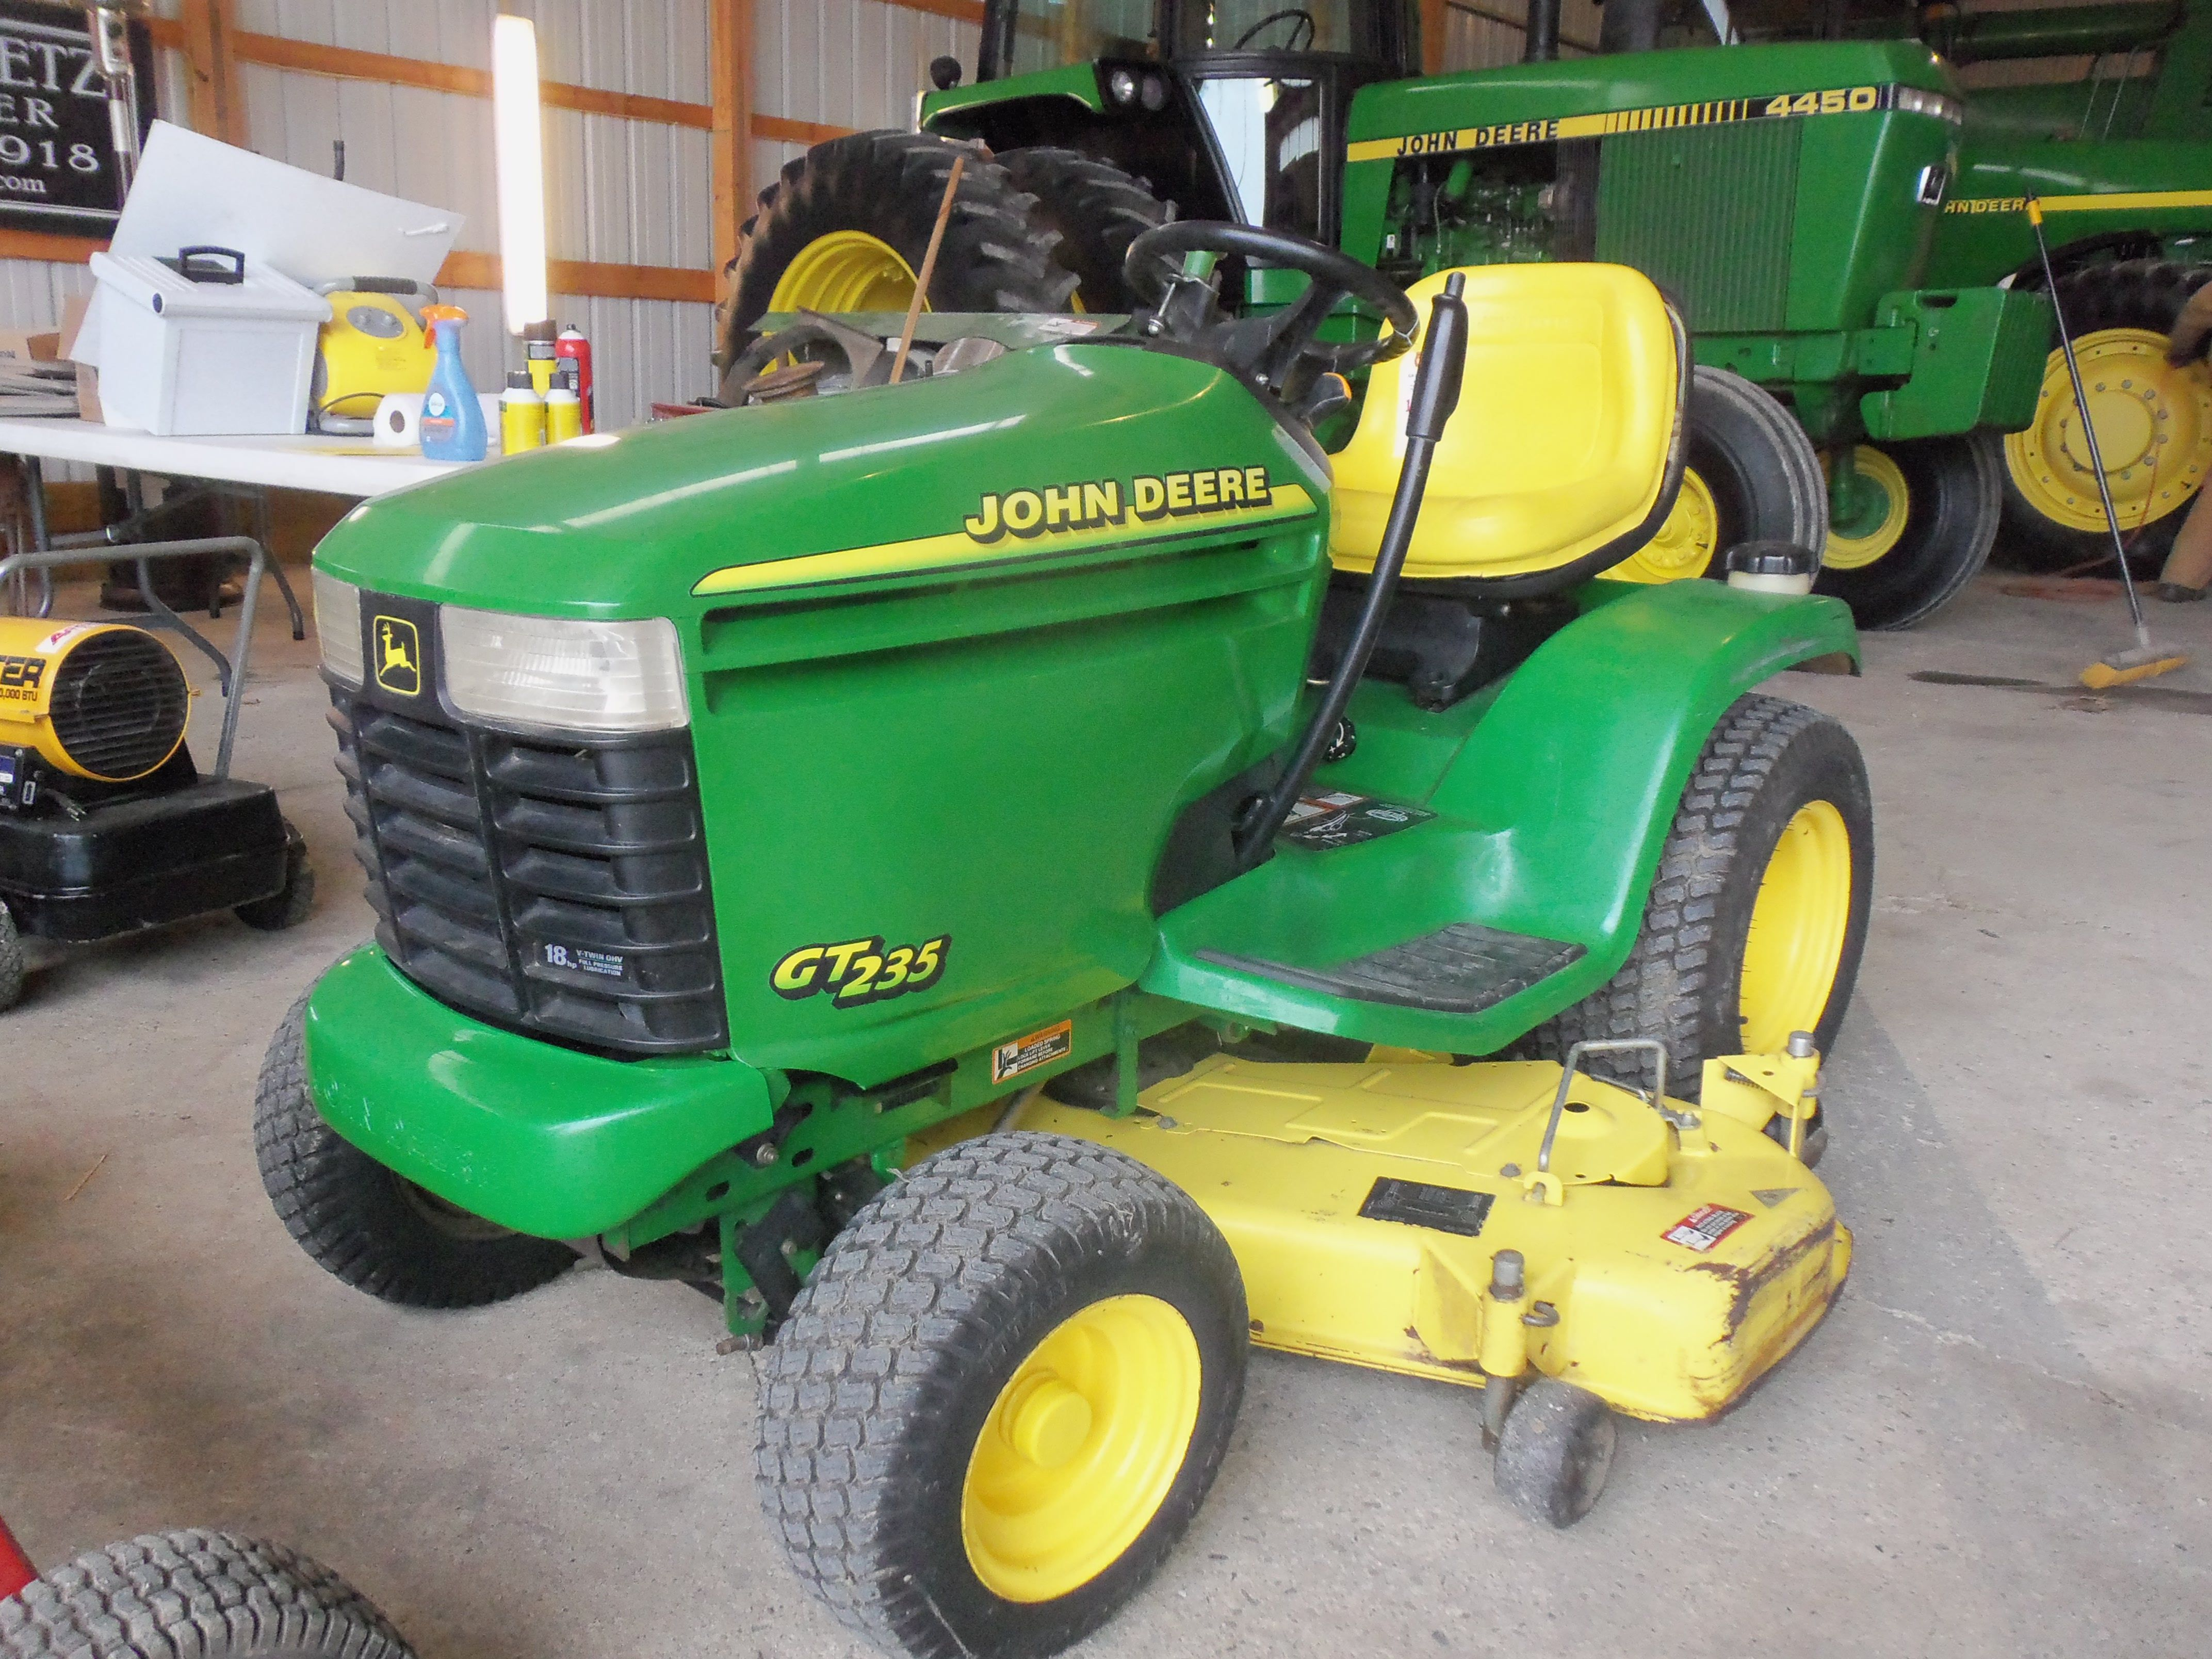 louis bader st tractor auctions deere michigan garden tractors case s sons in ring john deck dealer lawn mower